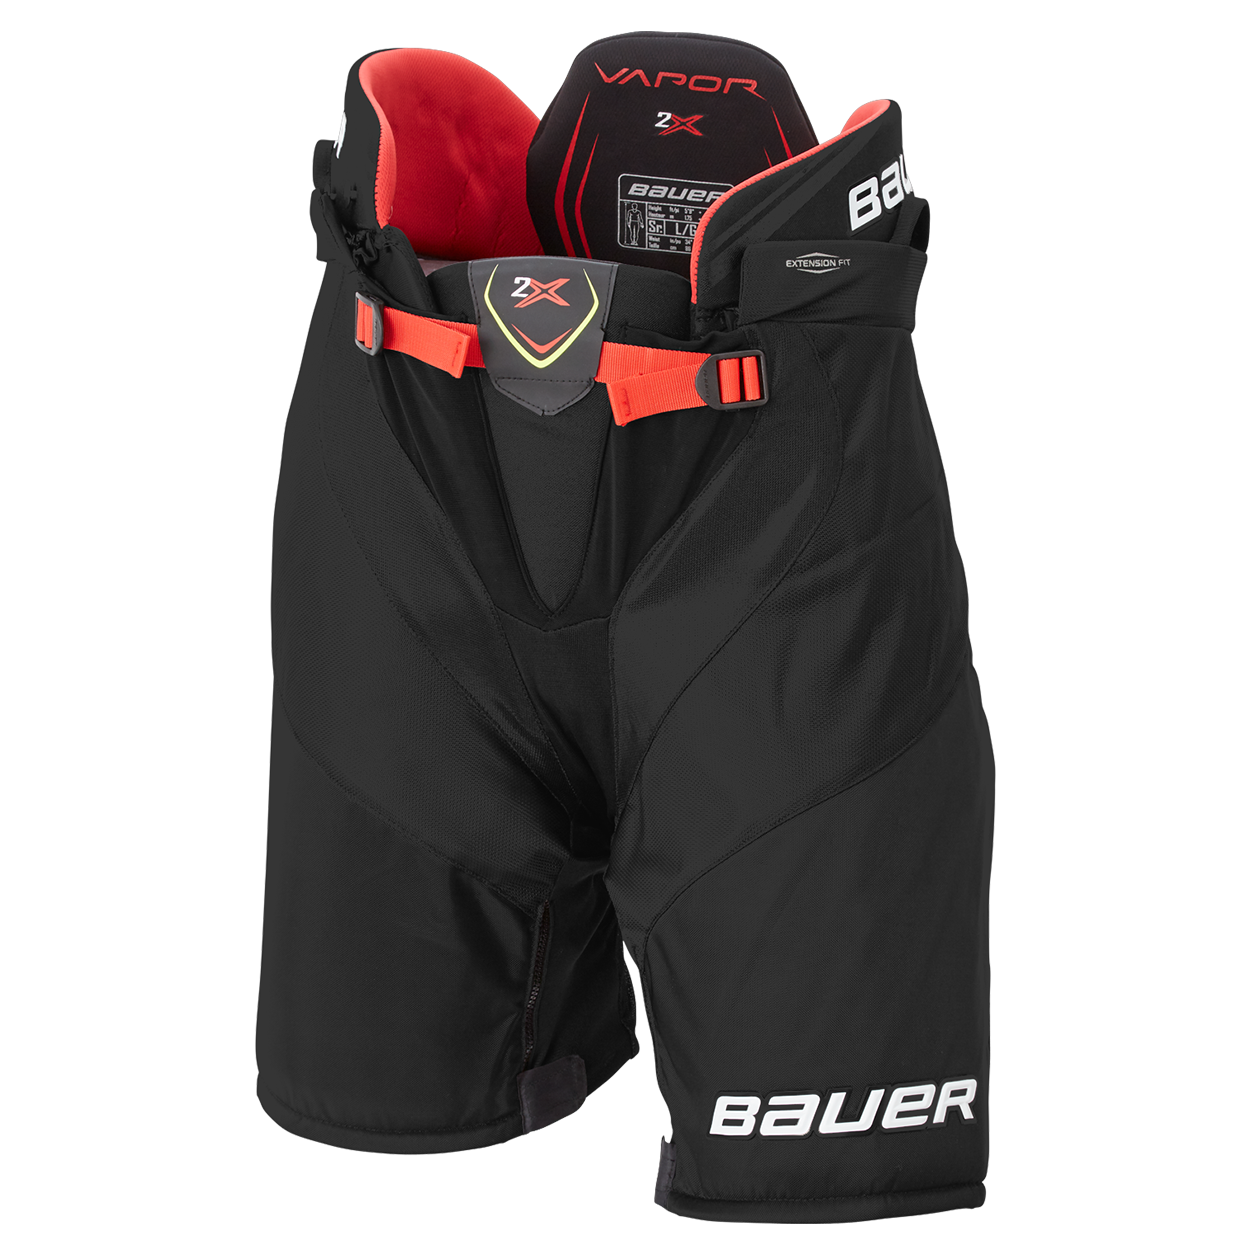 VAPOR 2X Pants Junior,Black,medium